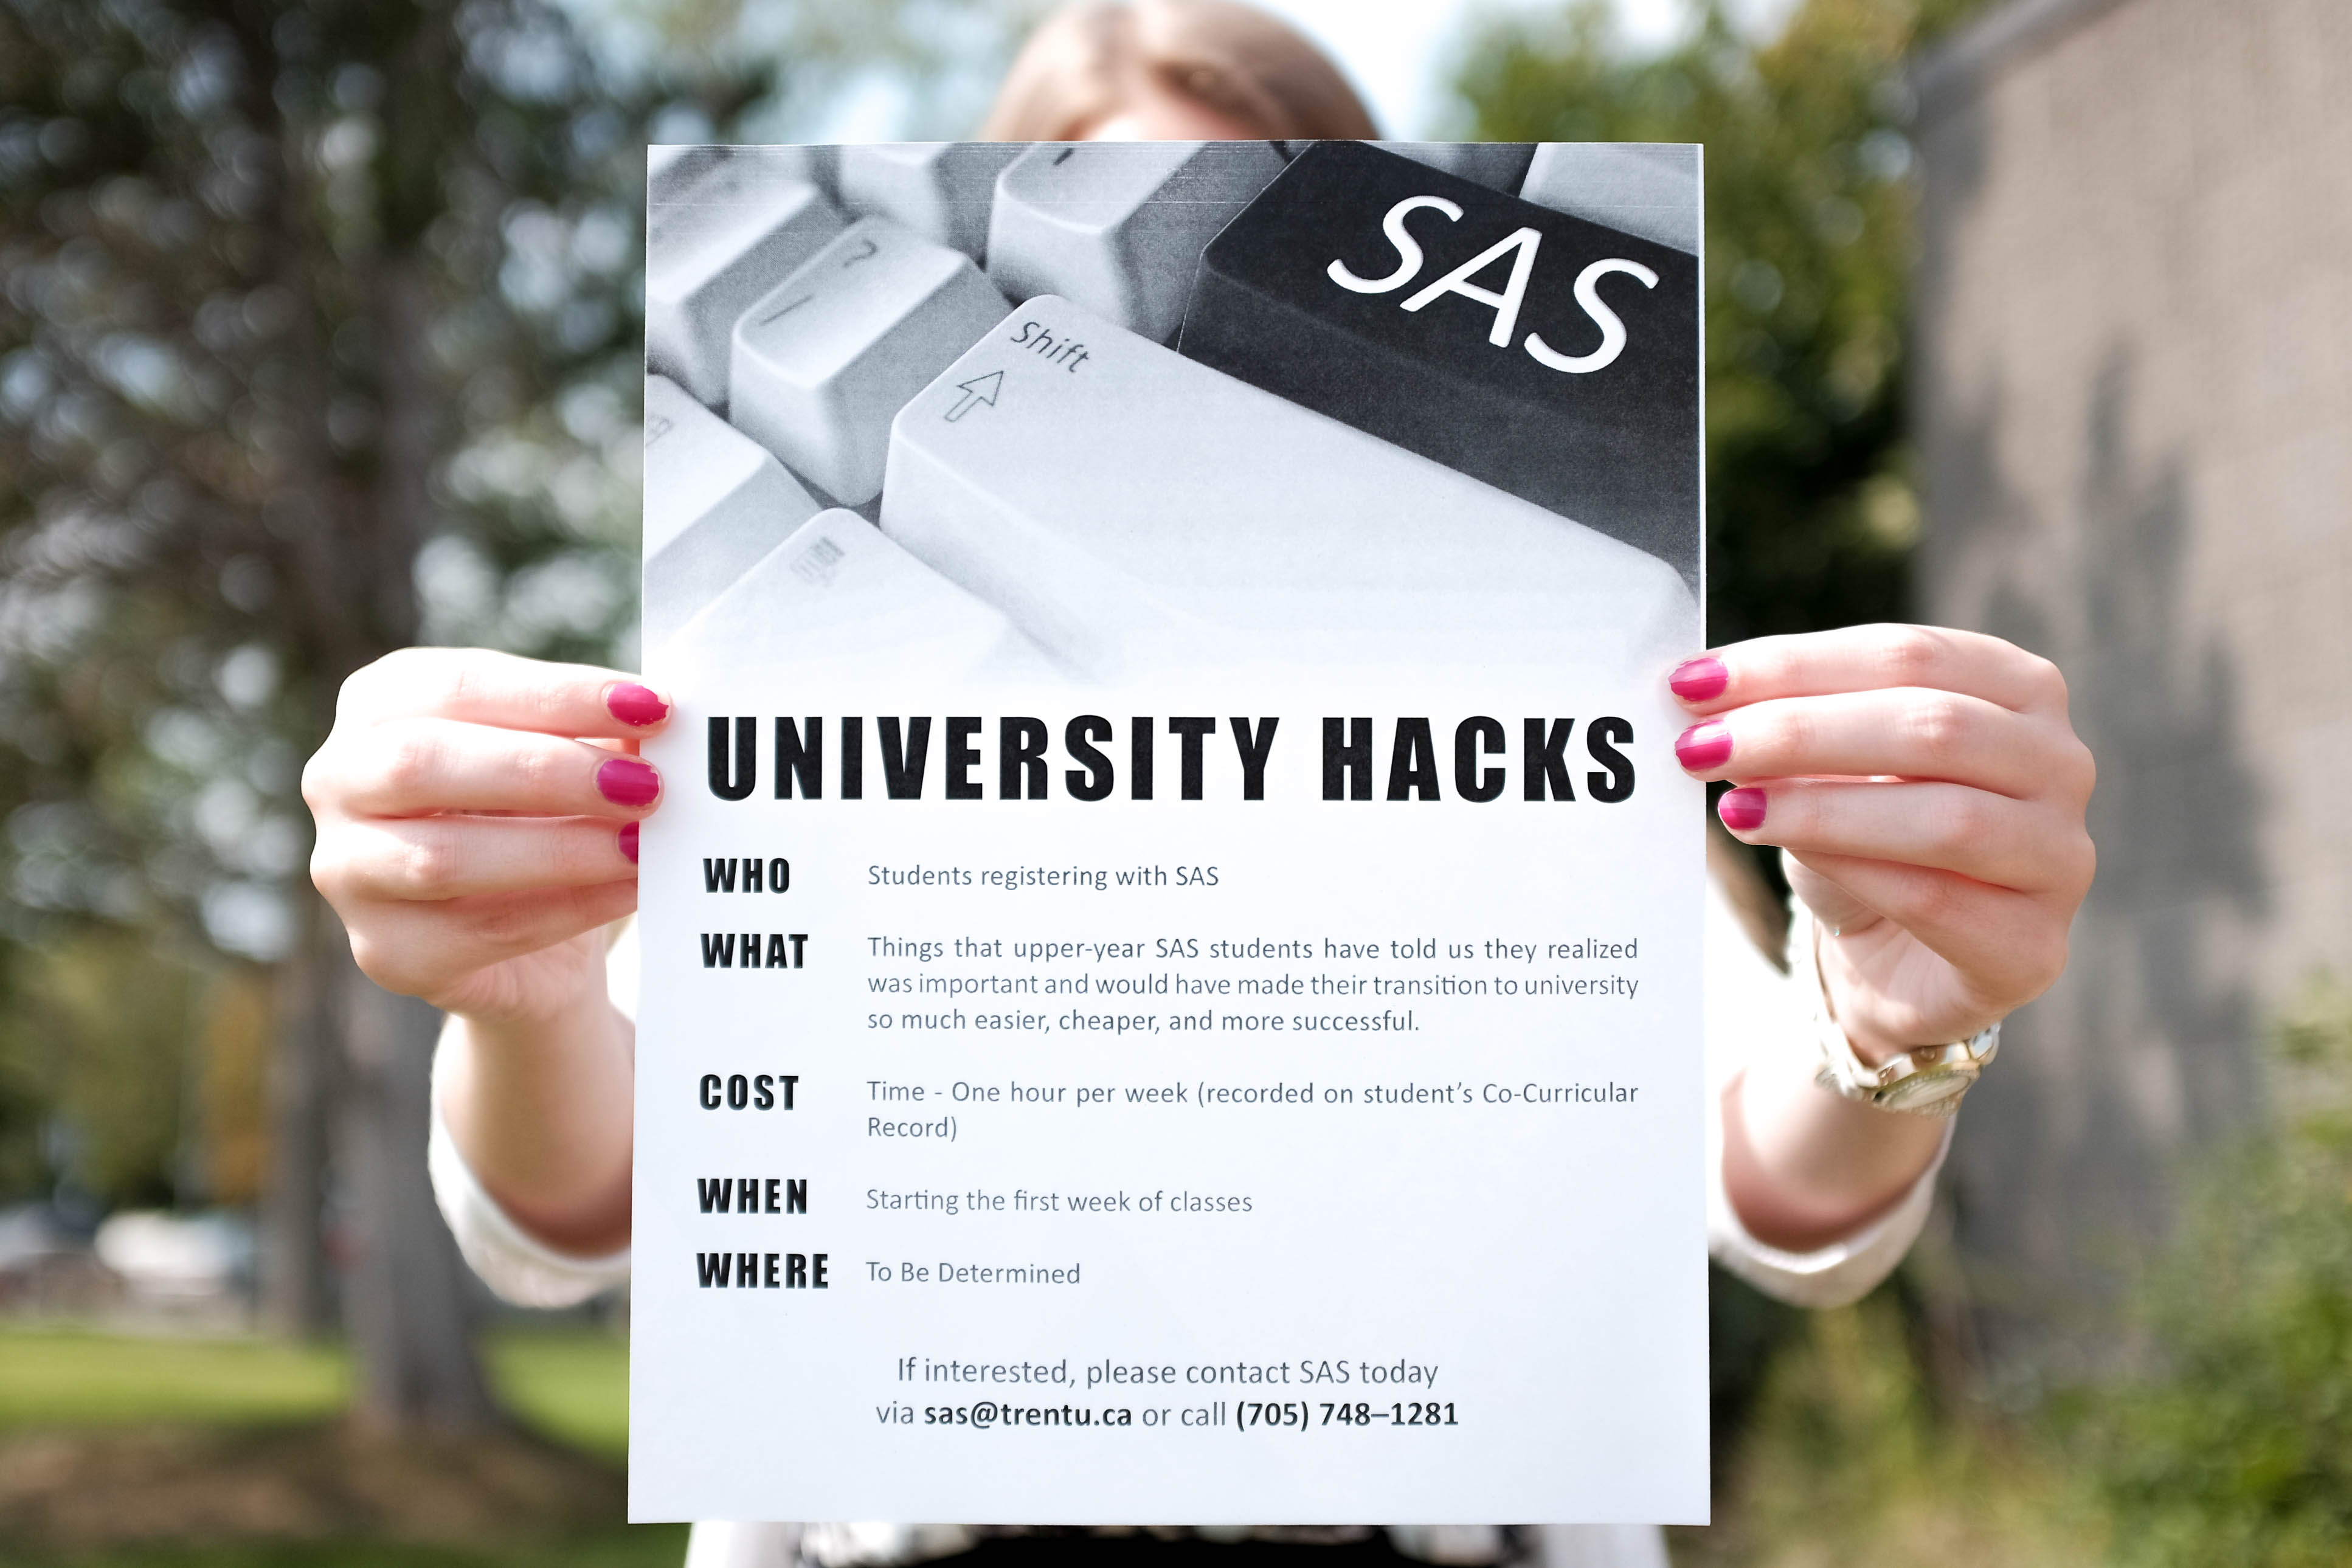 Student holding a promotional poster for University Hacks, poster is in prominent focus, only fingers are seen on the side of the poster.